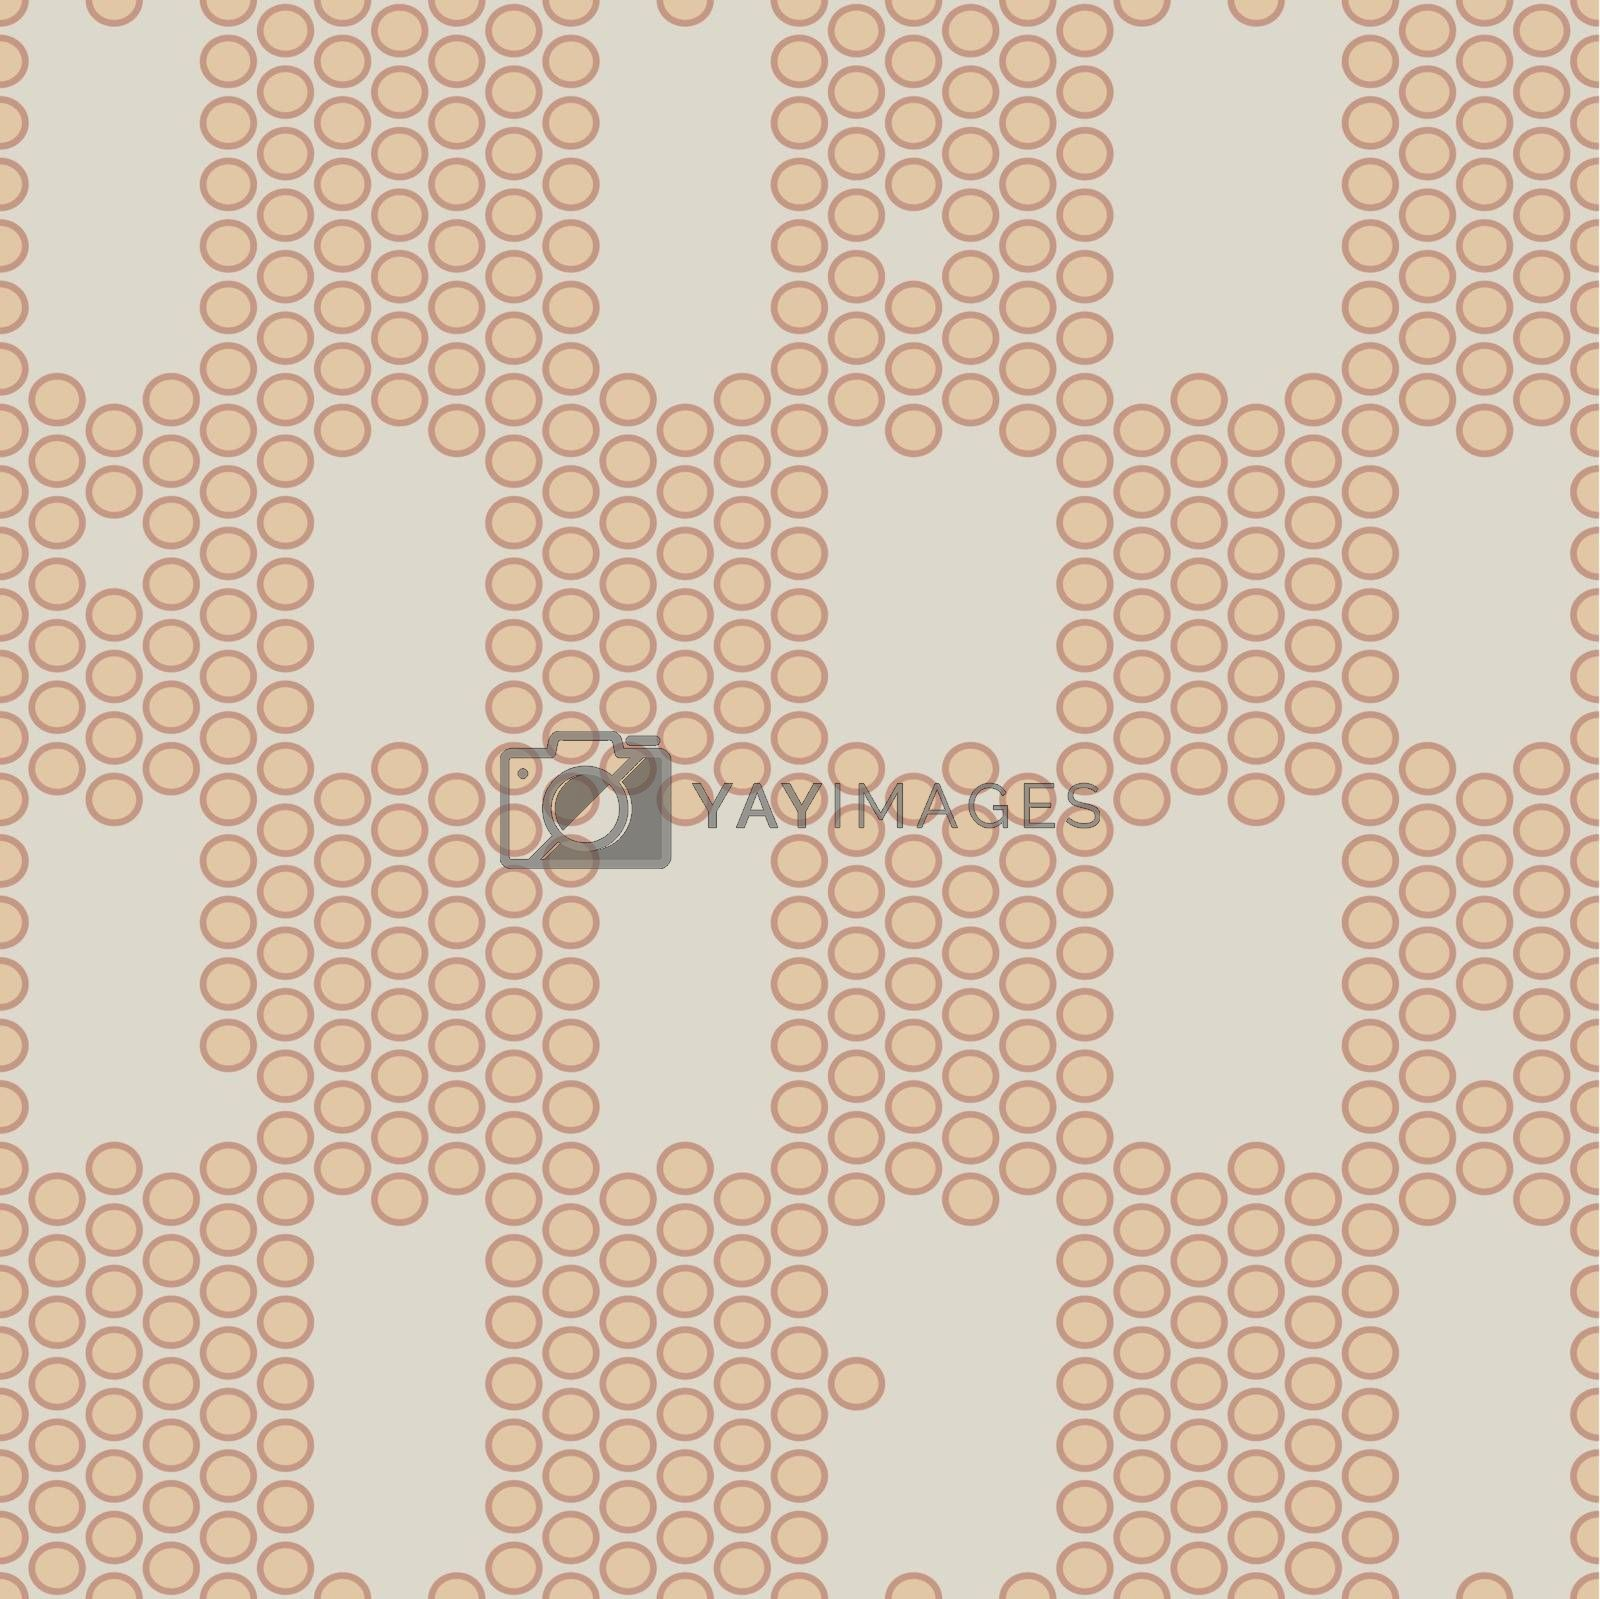 seamless texture of the circles  pastel color   mosaic effect